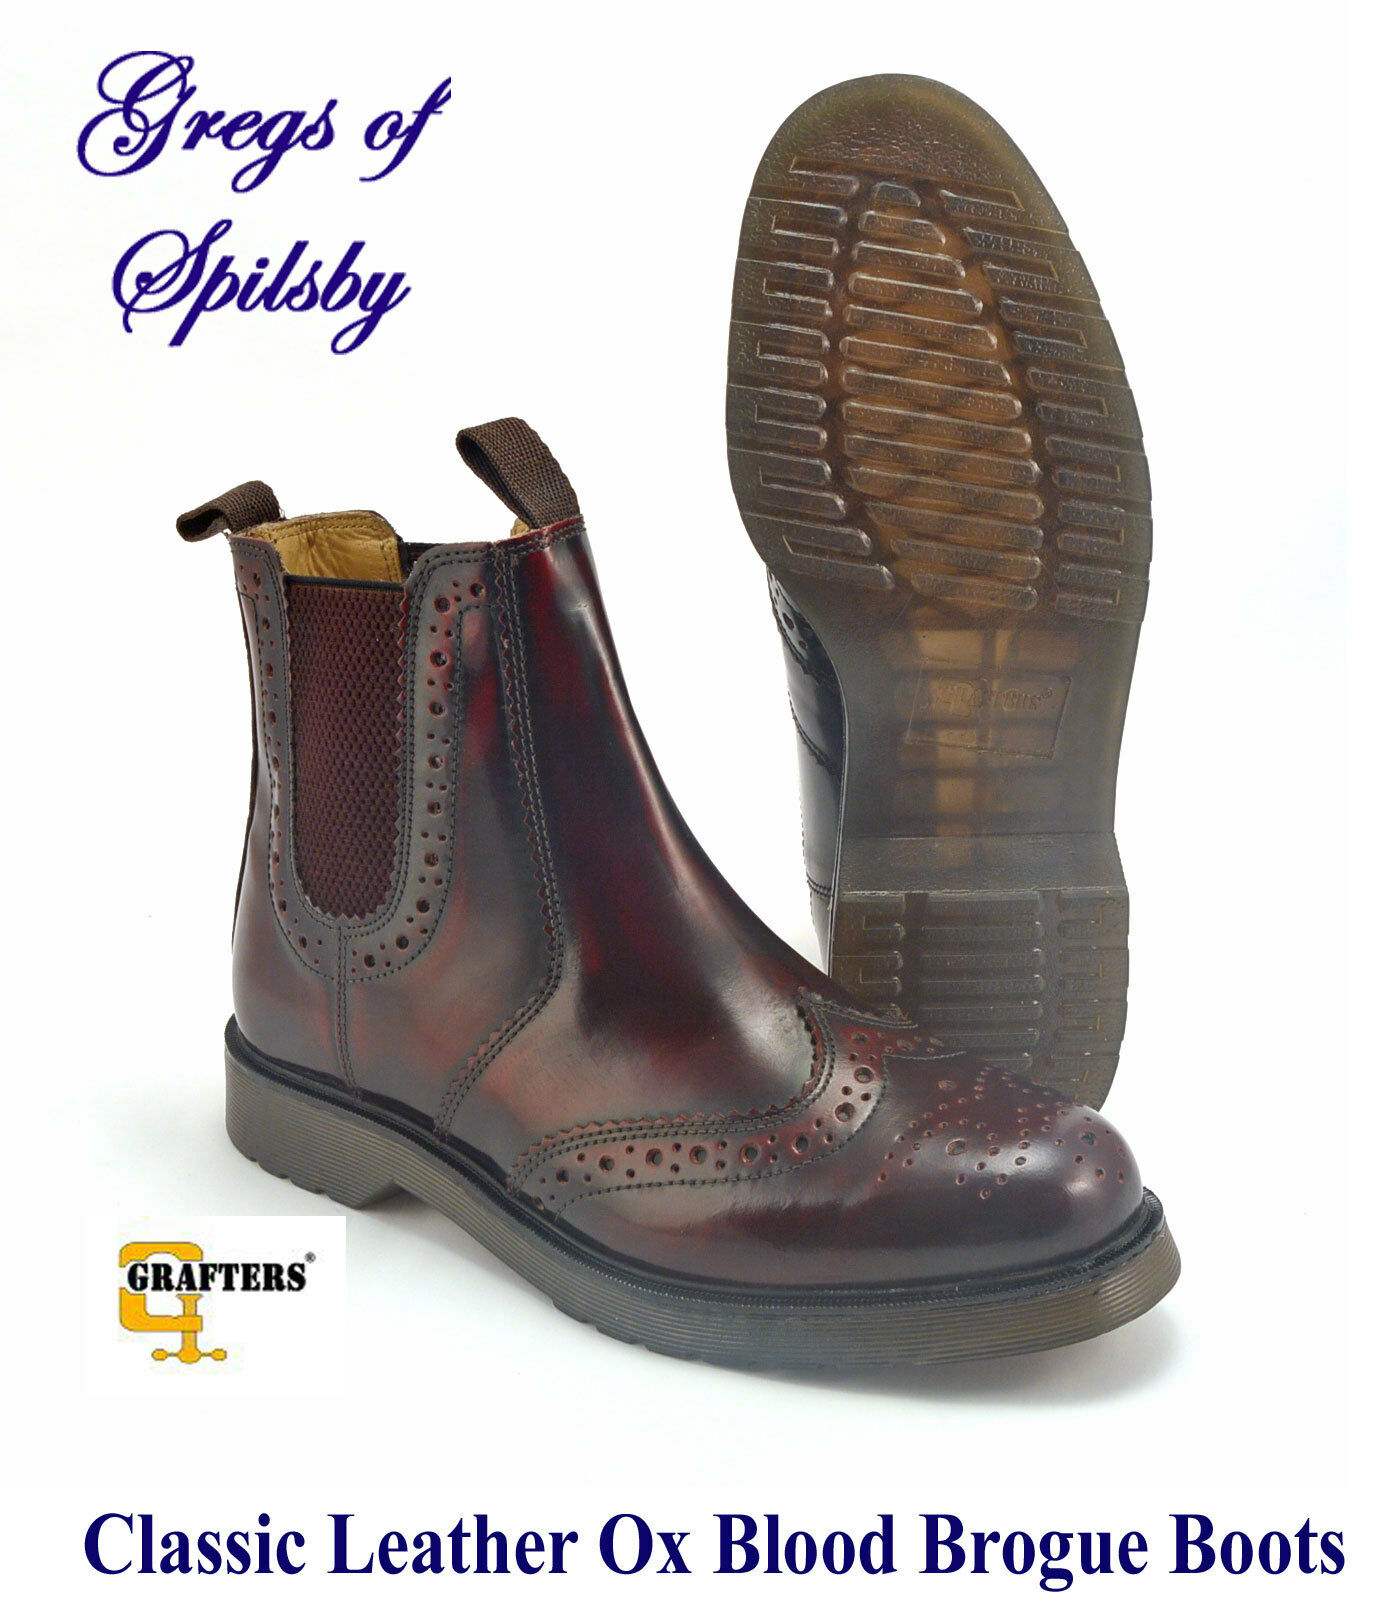 Mens Brogue Boots In Hi-Shine Oxblood Leather With Air Wear Soles Sizes 6 - 14